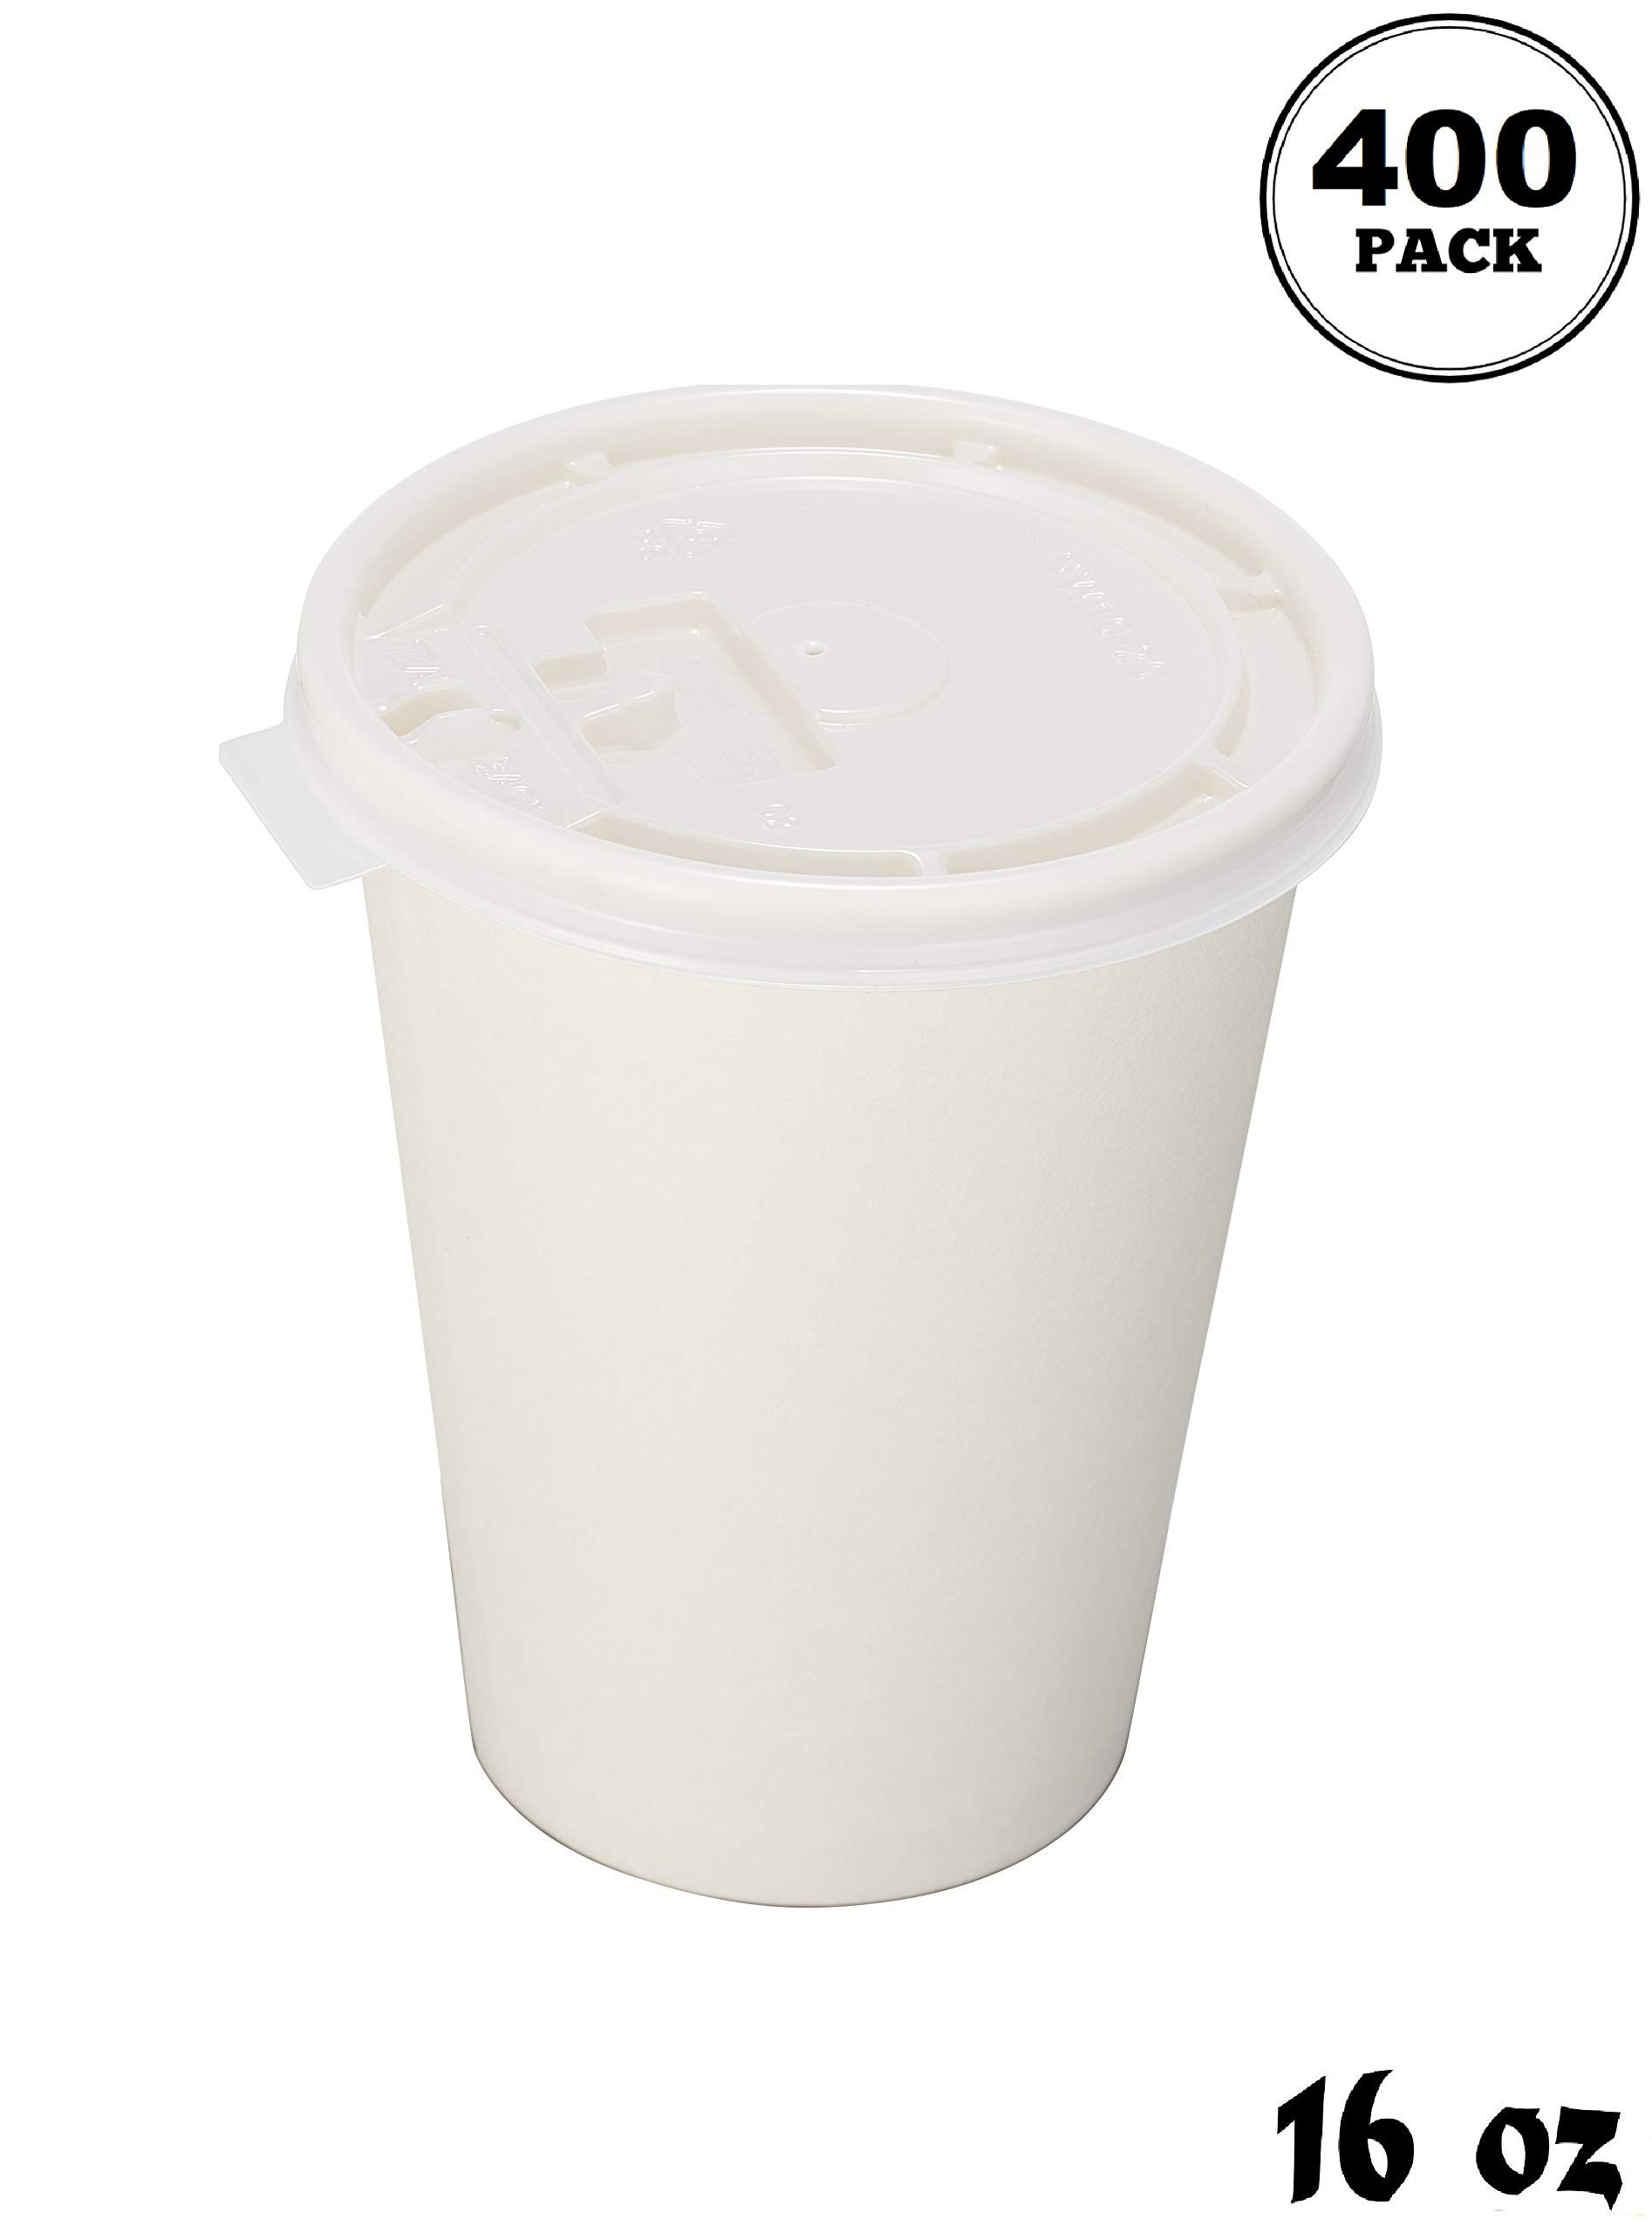 EcoQuality Durable Disposable Paper Cups & Flat Lids For Hot/Cold Drink, Coffee, Tea, Cocoa, Travel - Extra Large 16 Ounce Cups, 400 Count Cups & 400 White Flat Lids - White